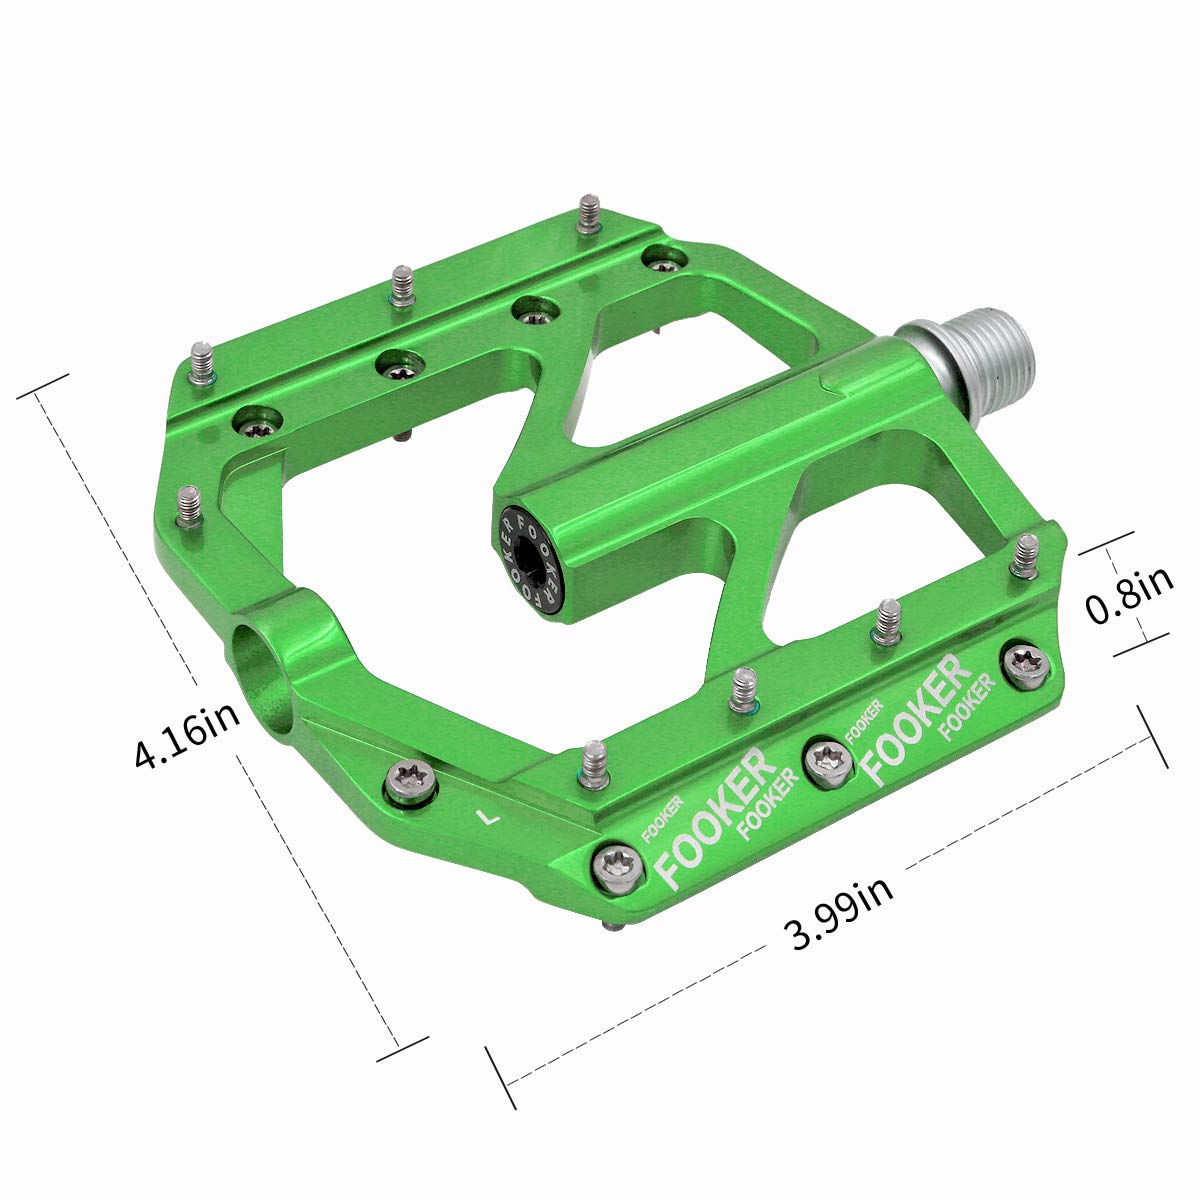 FOOKER Bike Pedals Non-Slip Aluminum Alloy MTB Mountain Bike Pedals 3 Bearing 9/16'' for Road BMX MTB Fixie Bikes by FOOKER (Image #7)